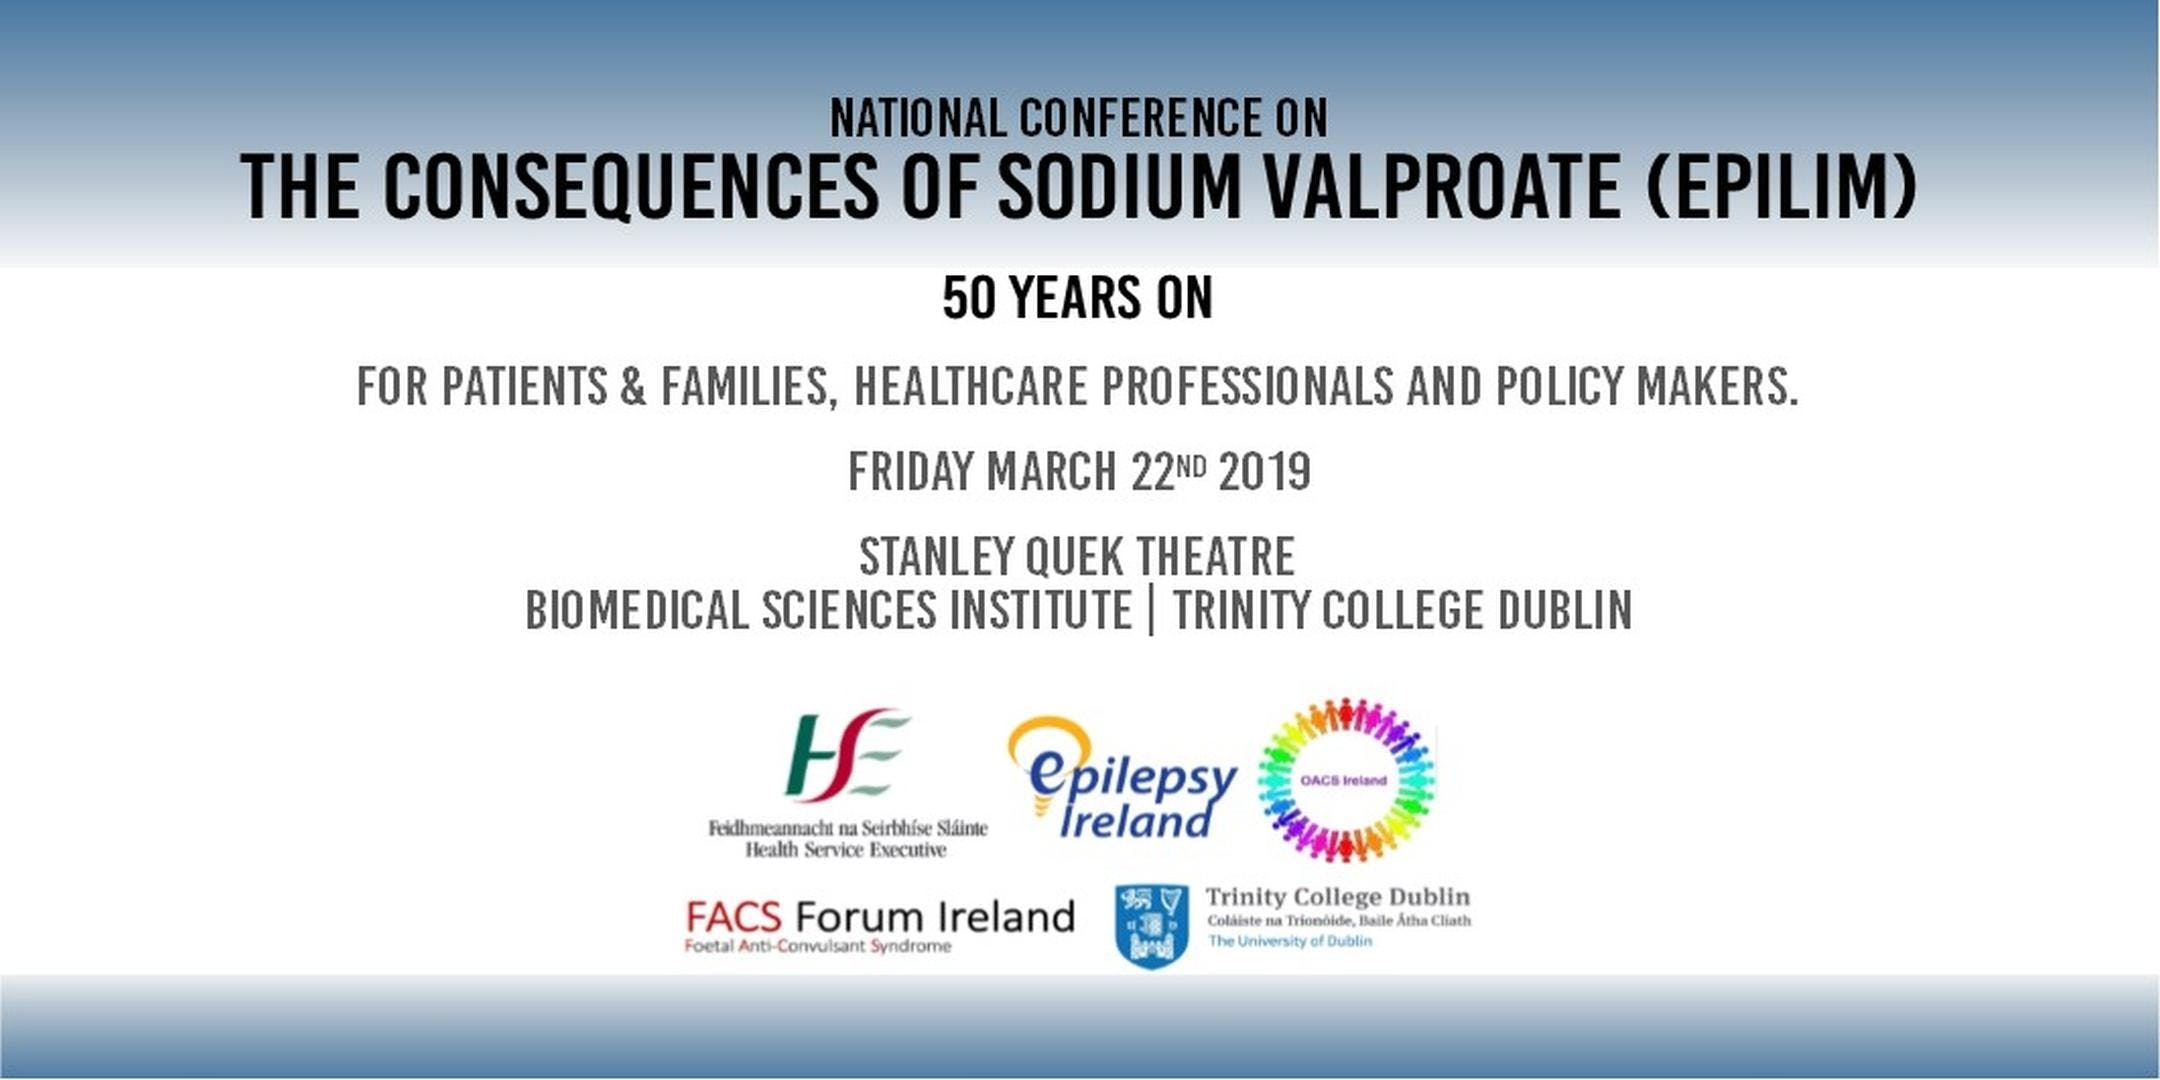 National Conference on the Consequences of Sodium Valproate (Epilim): 50 years on